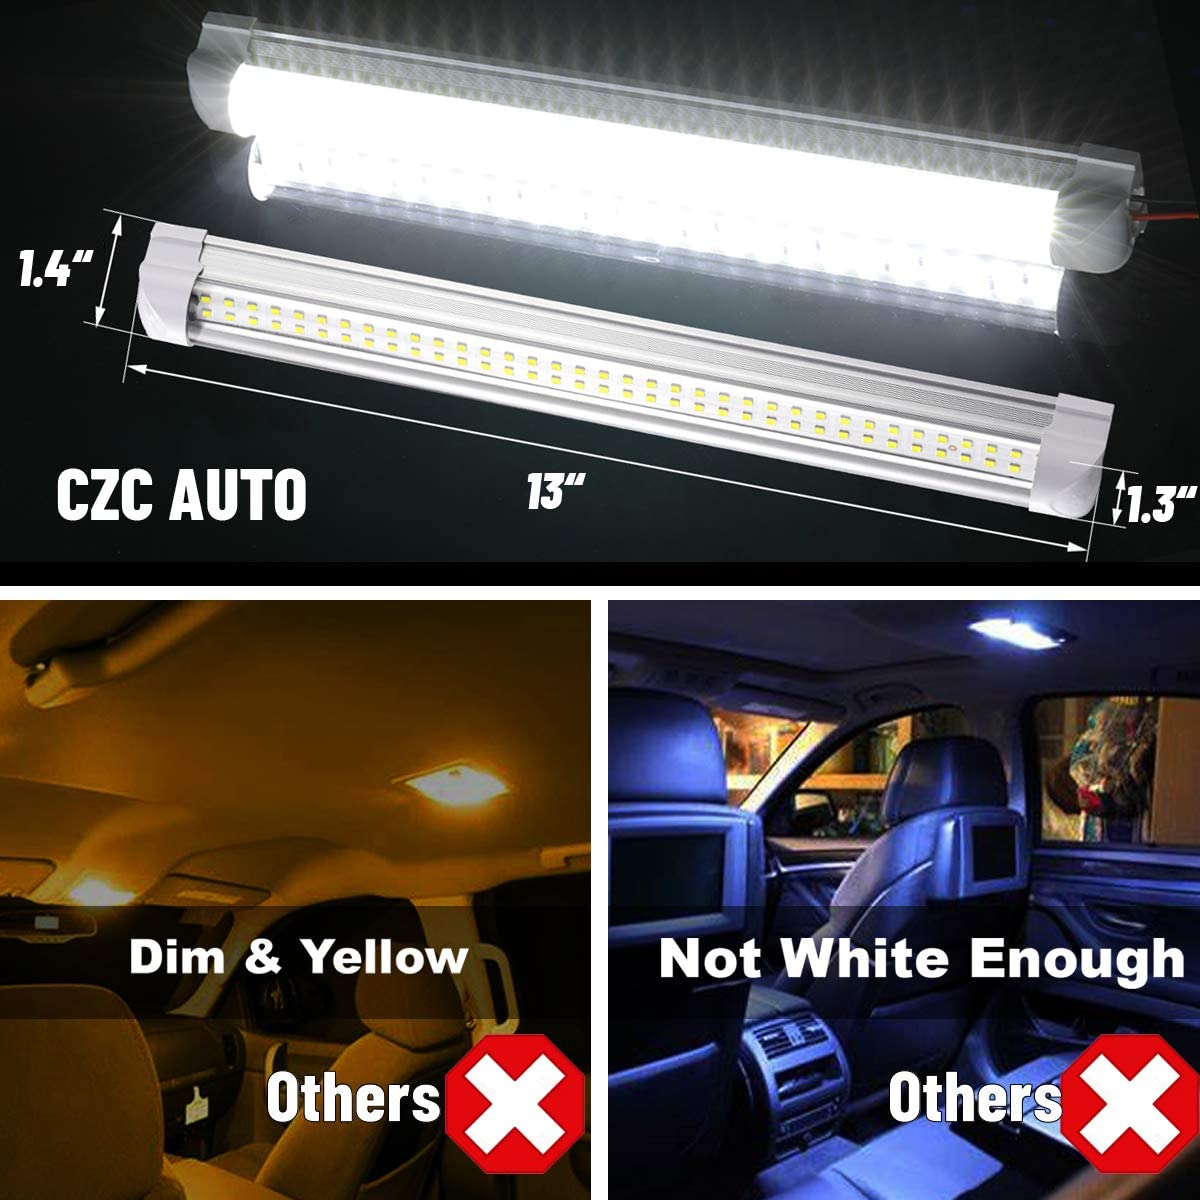 CZC AUTO 13 inch LED Interior Light Bar 12V RV Strip Light Fixture with ON//OFF Switch Camp Shell Light 72 LEDs Strip Lights for Van Lorry RV Motorhome Truck Trailer Boat Cabinet Camping 8 Pack